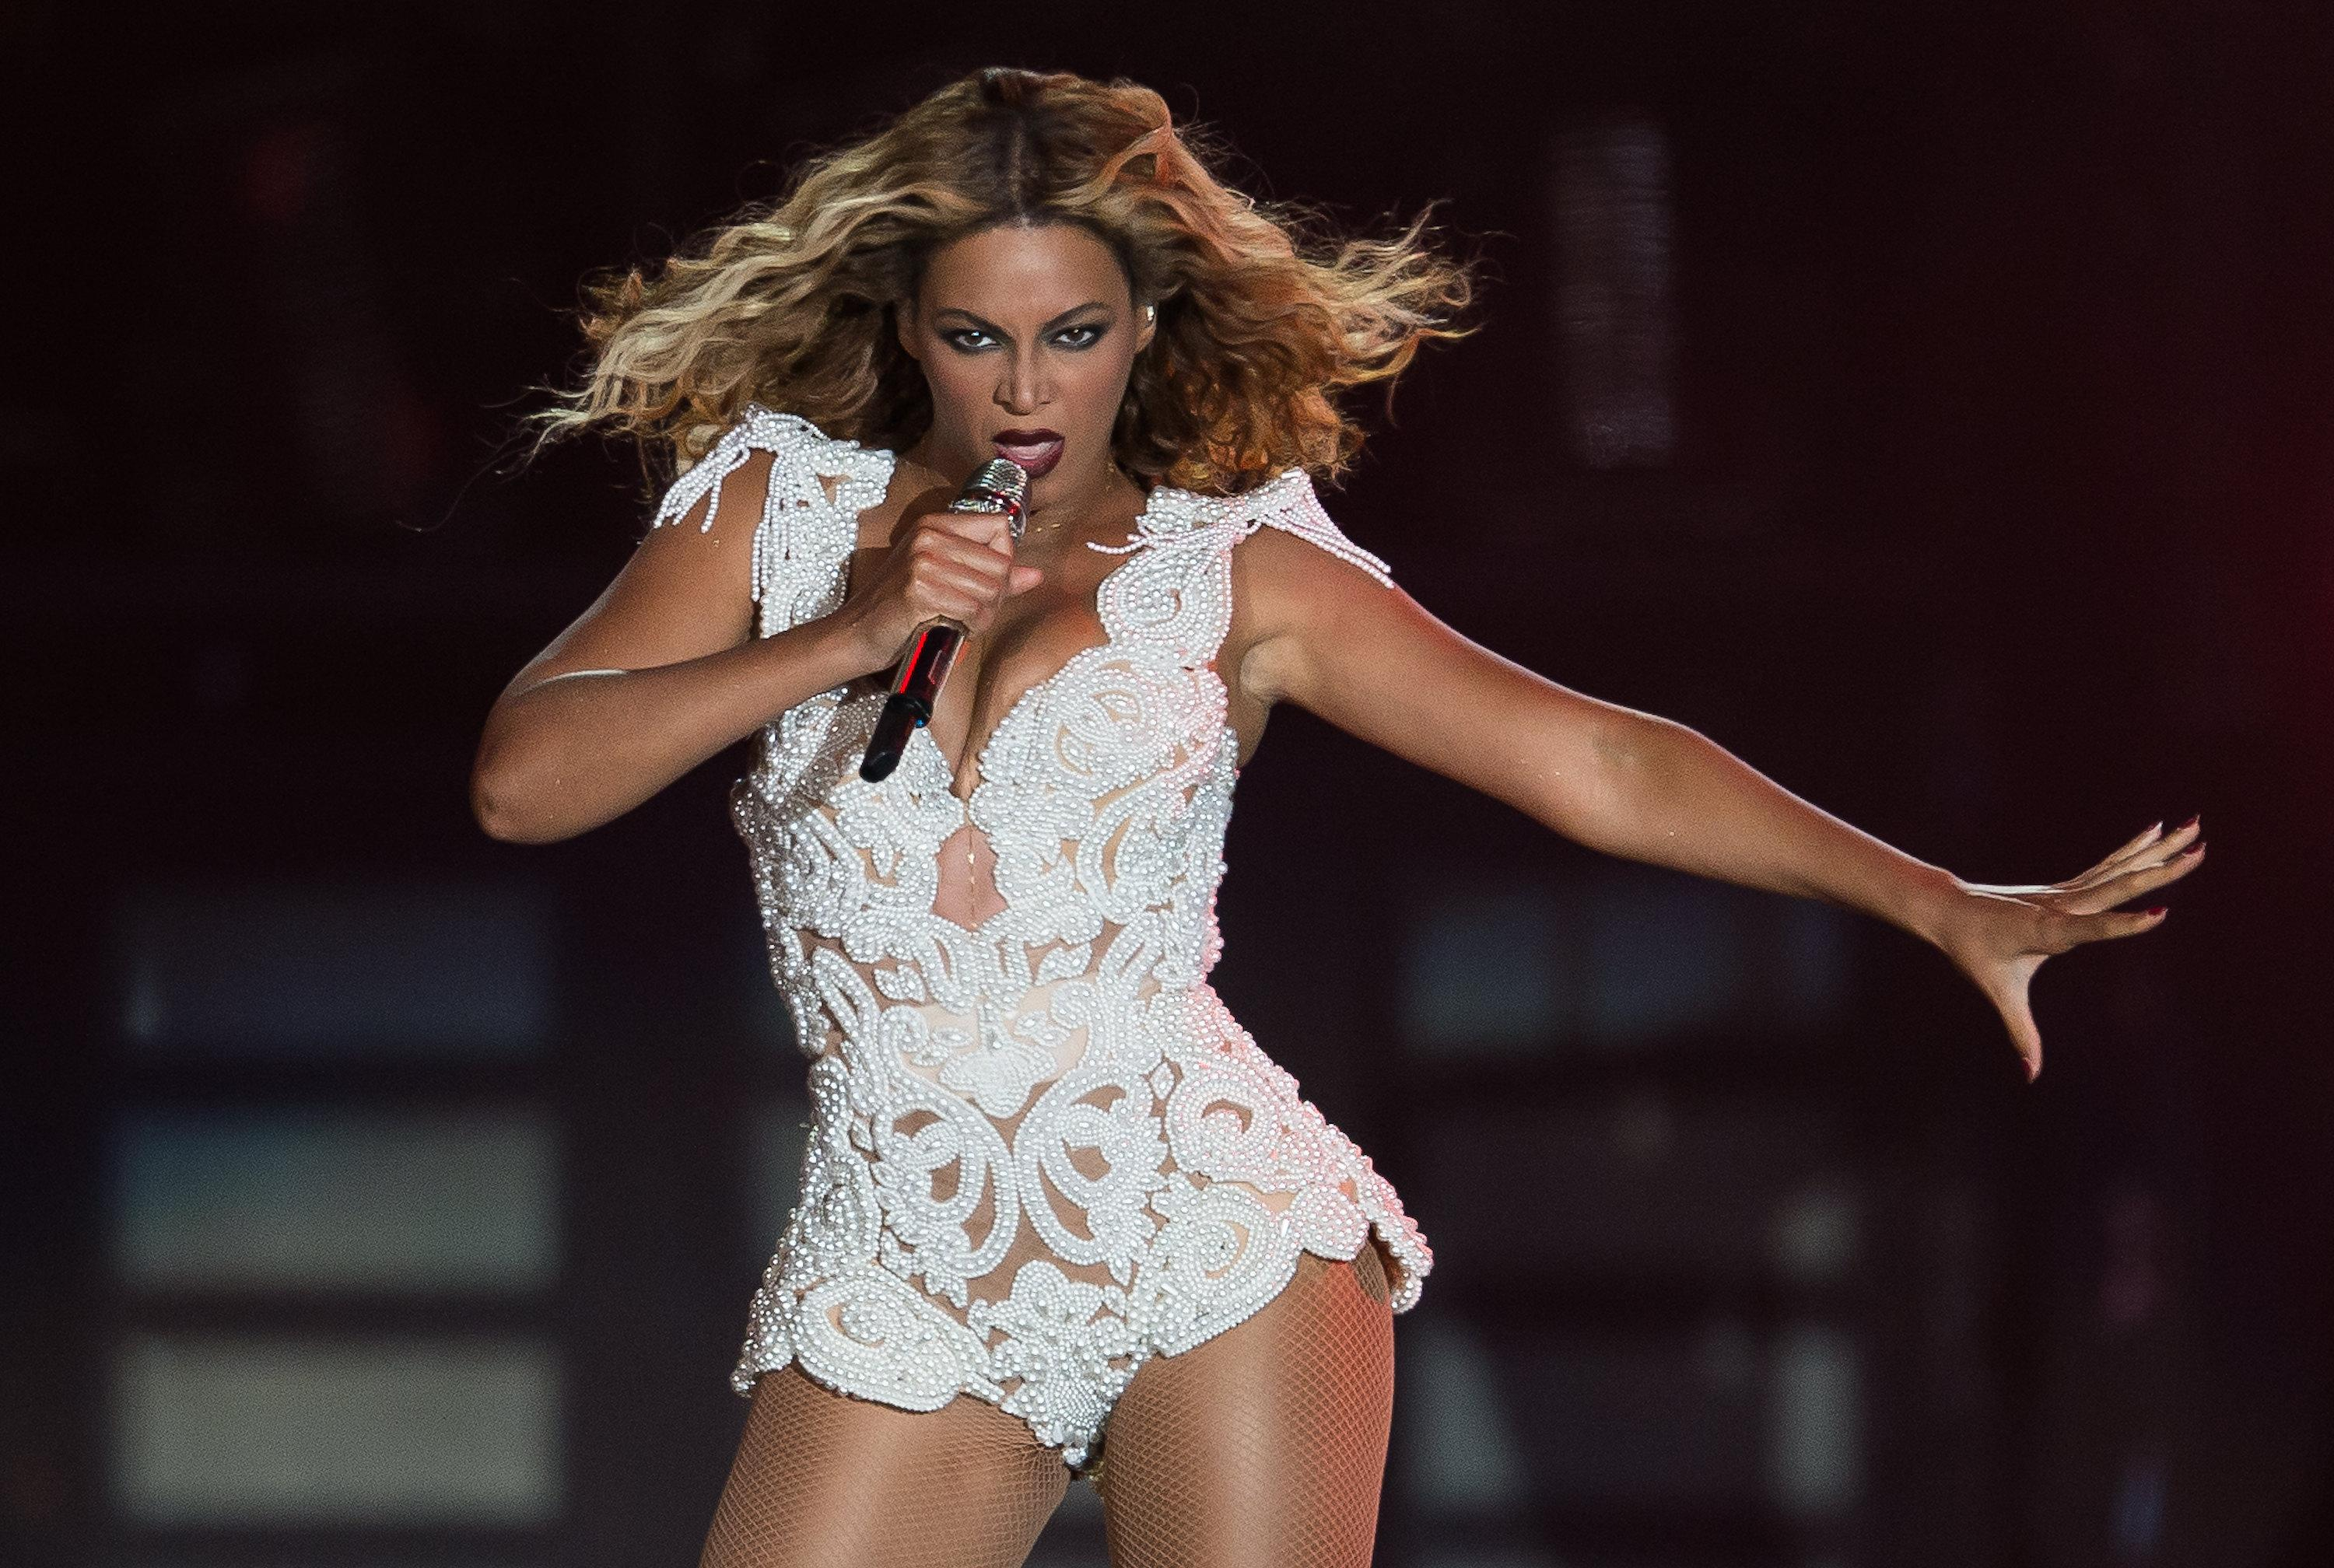 beyonce-before-fame-1531158180283-1531158183265.jpg